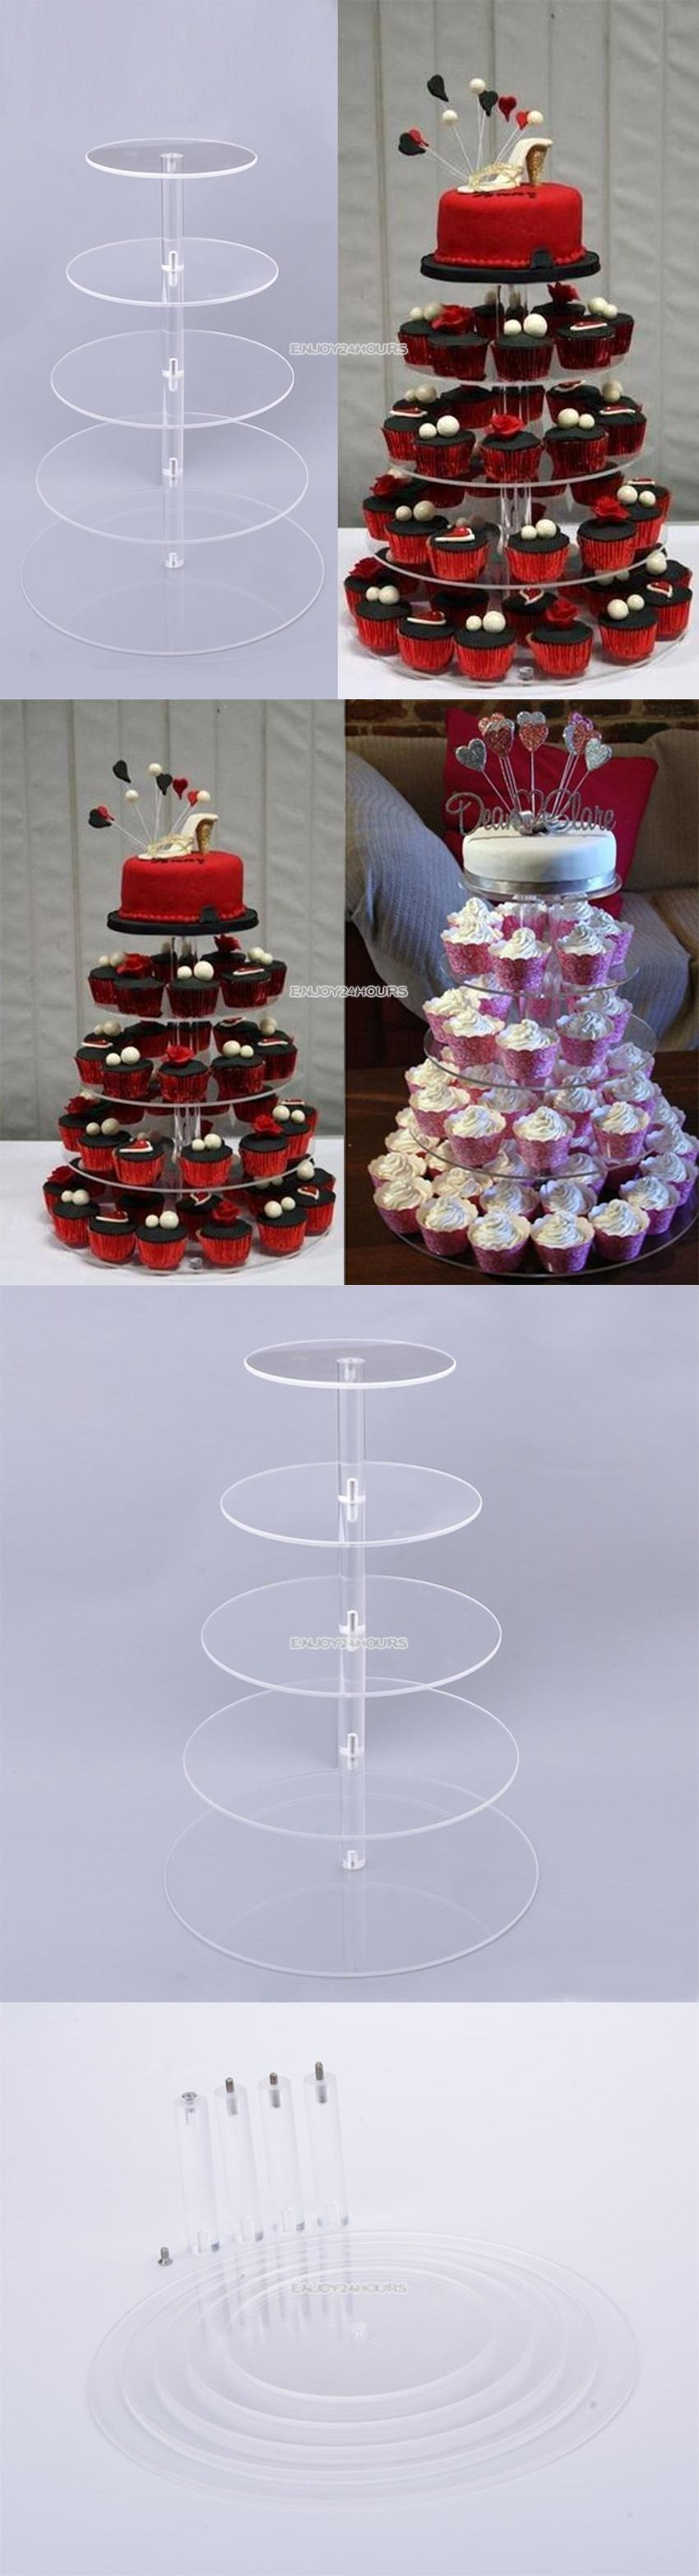 Tier crystal clear round cake cupcake stand wedding birthday